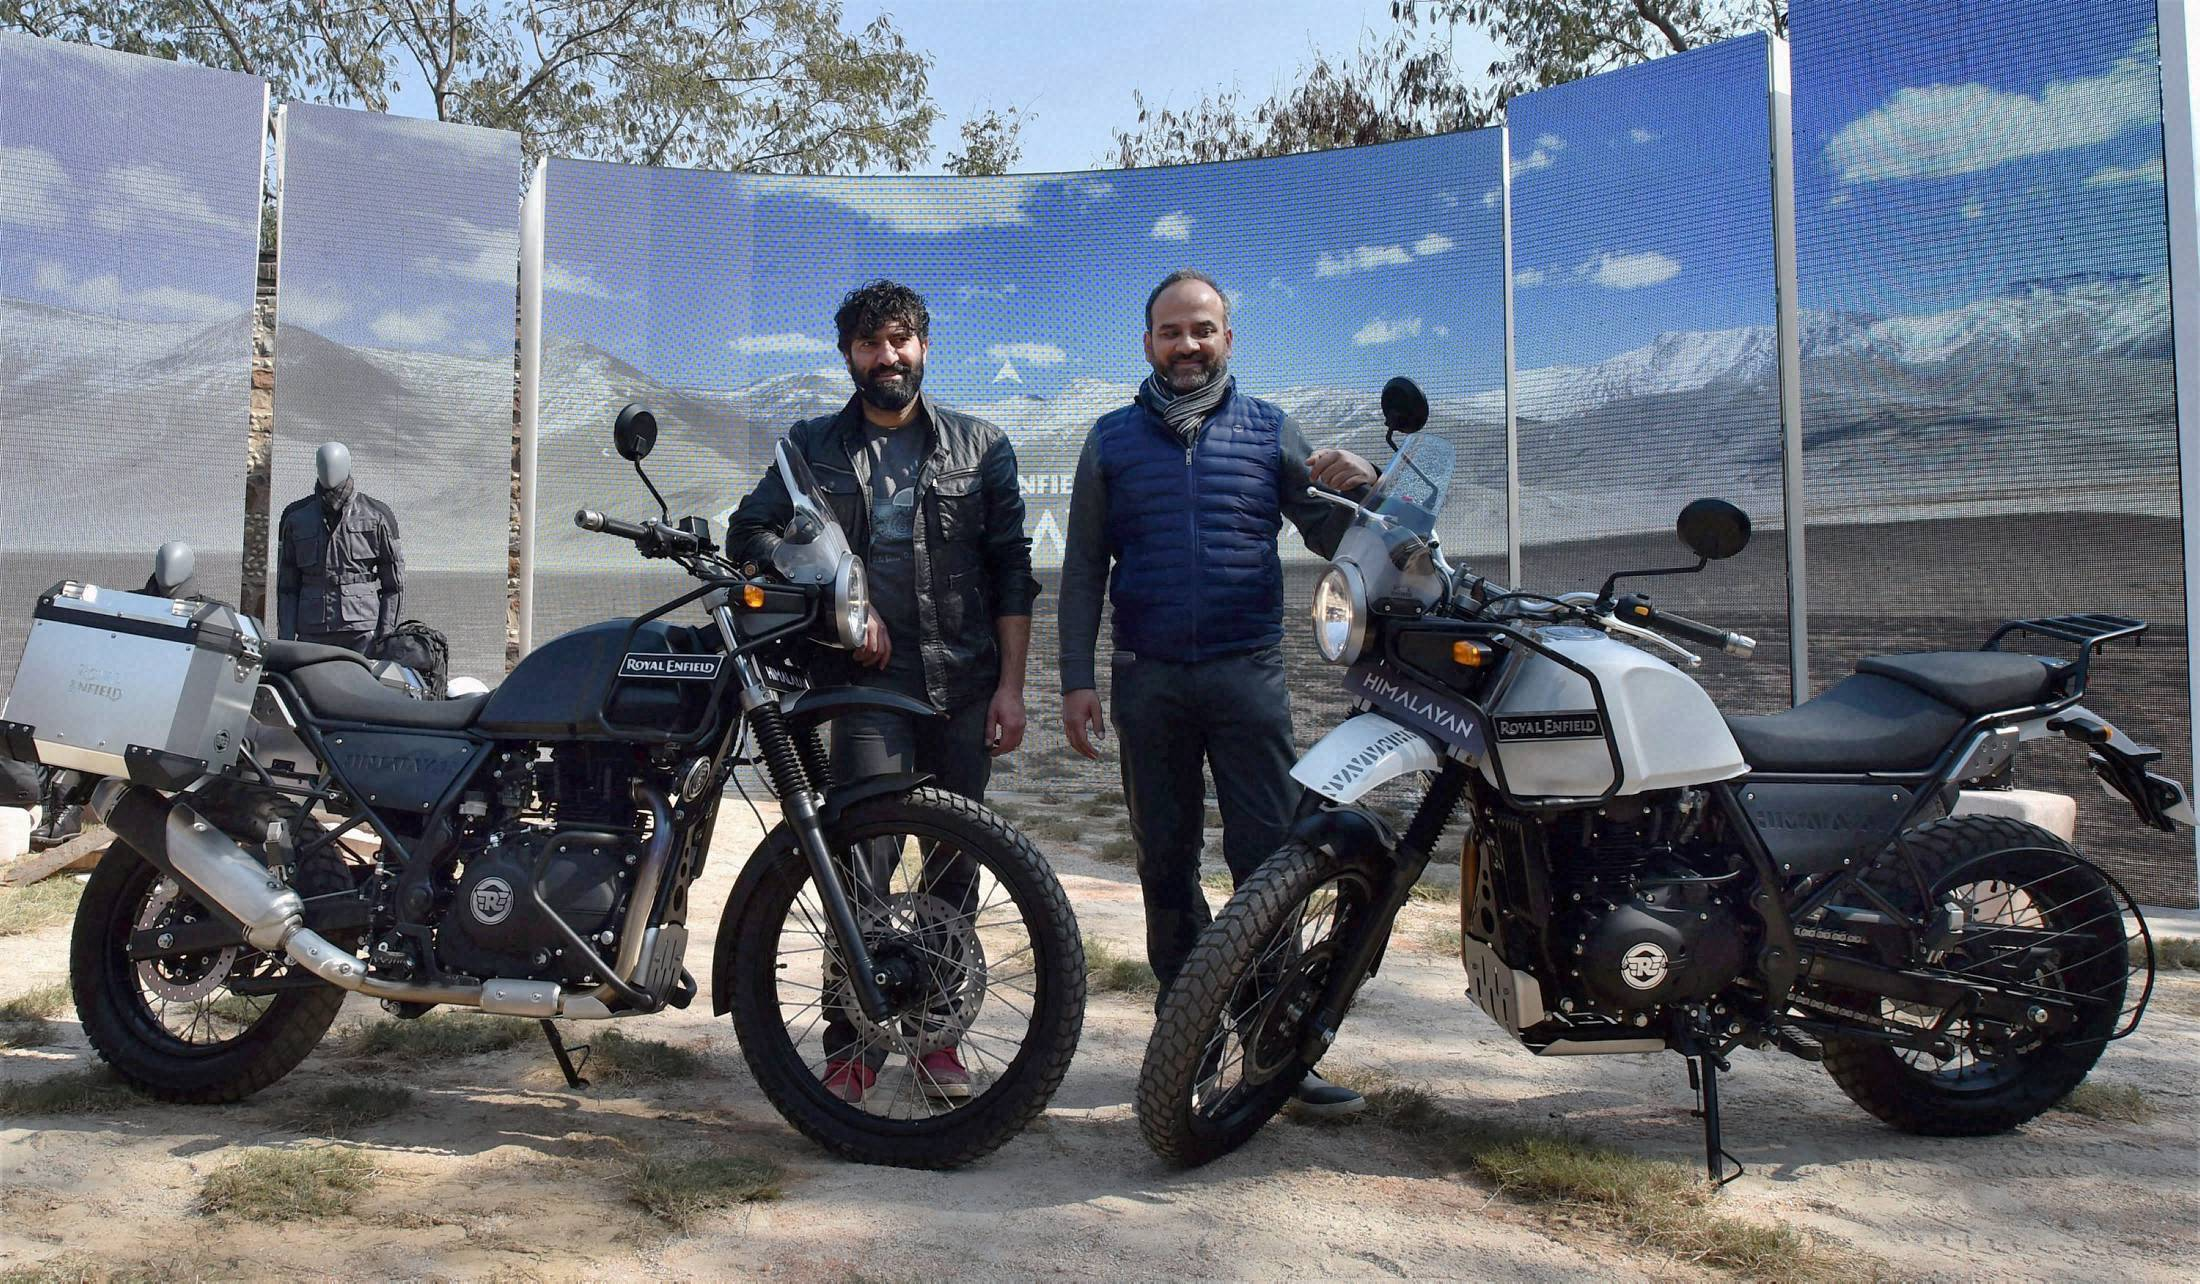 Moto expo 2016 Royal Enfield at the launch of Himalayan